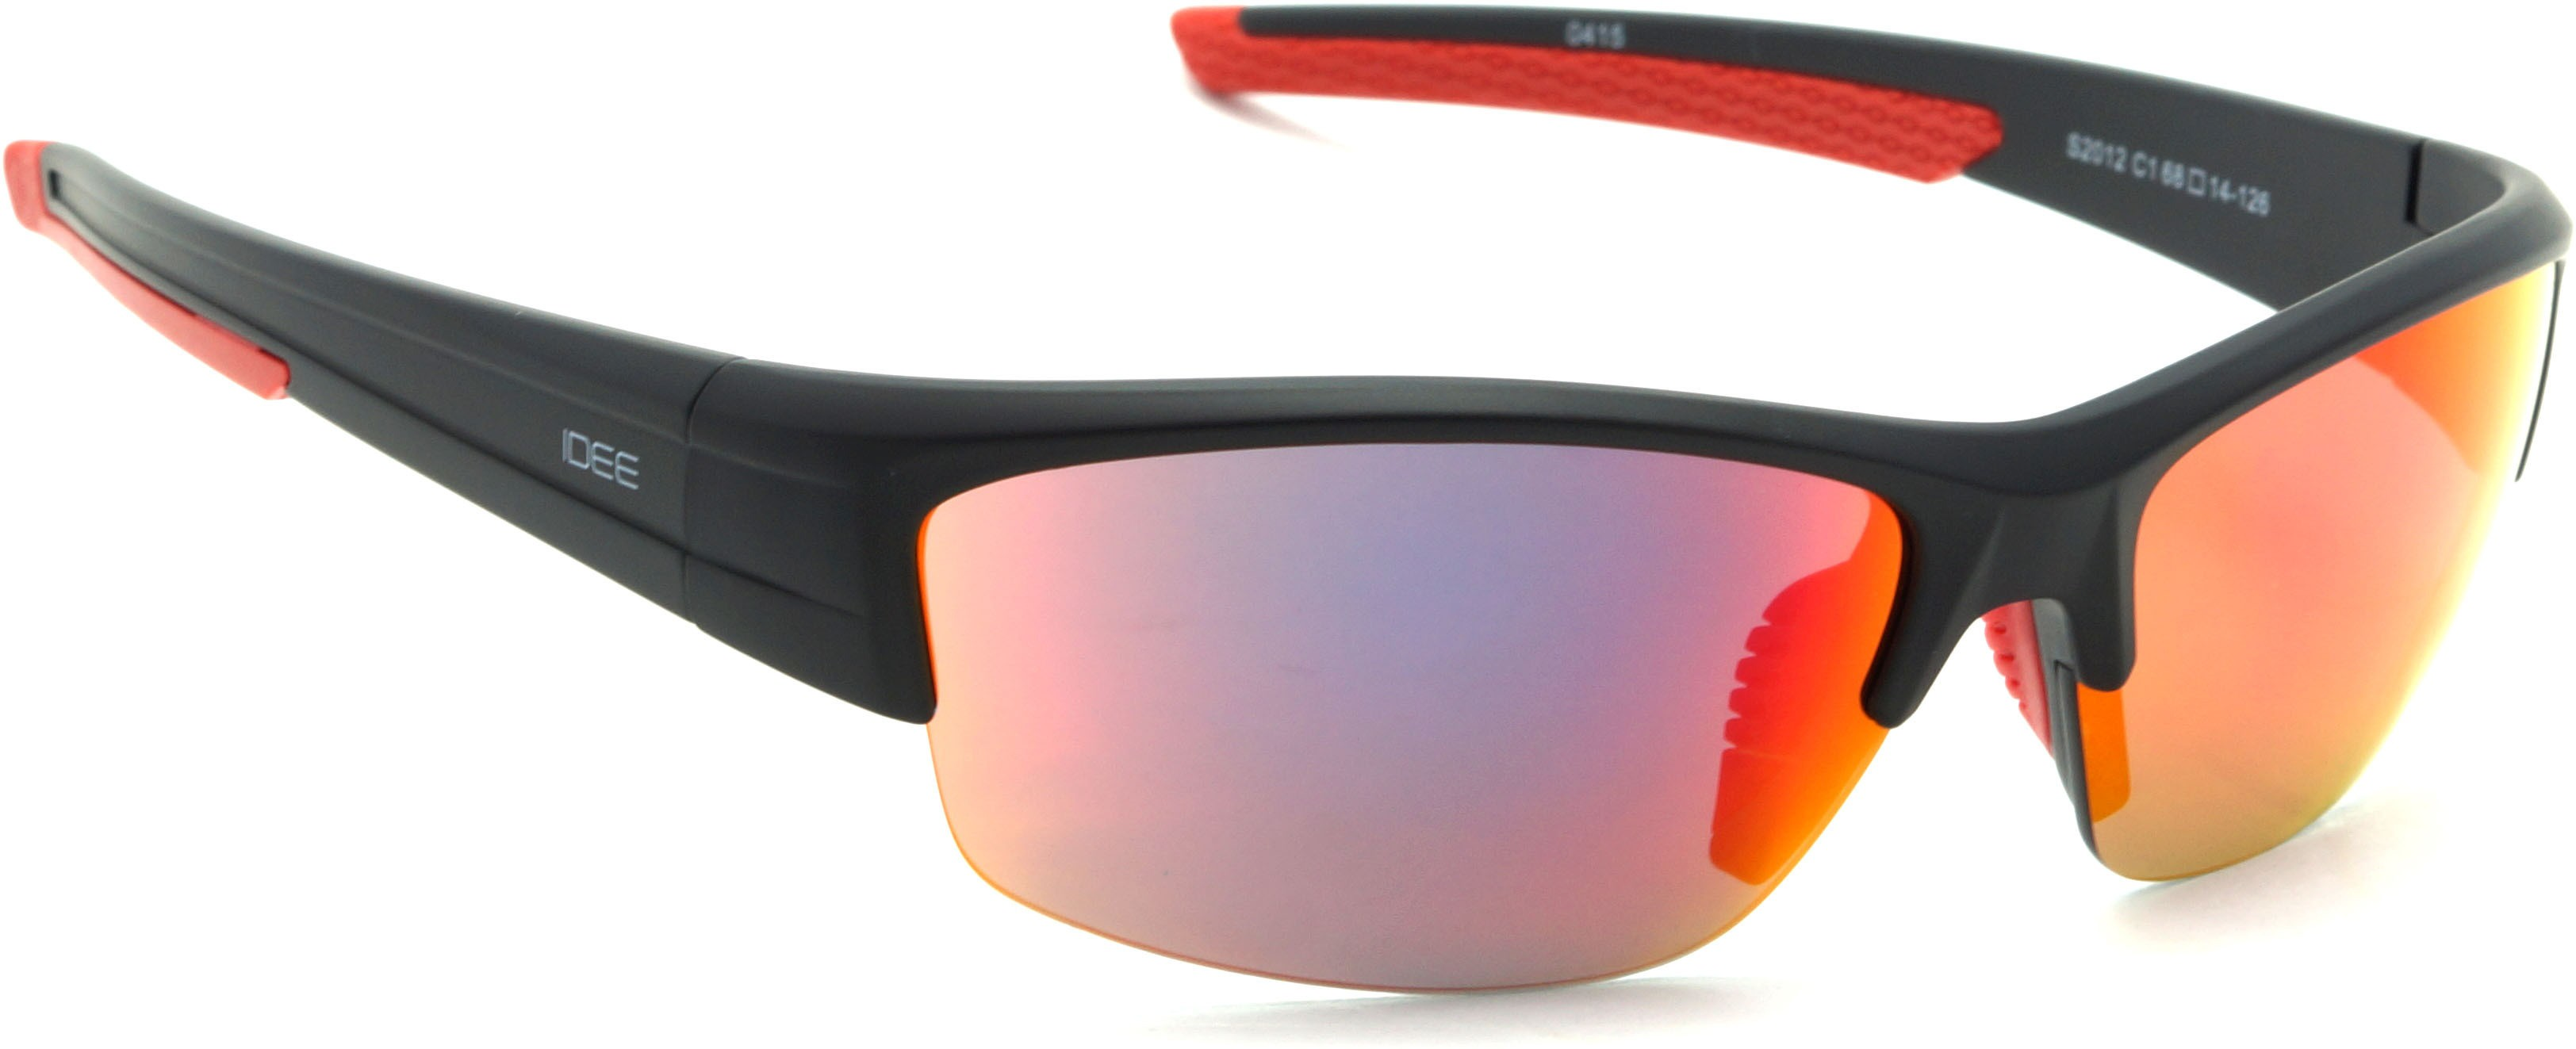 Deals | Sporty Sunglasses Shop Now